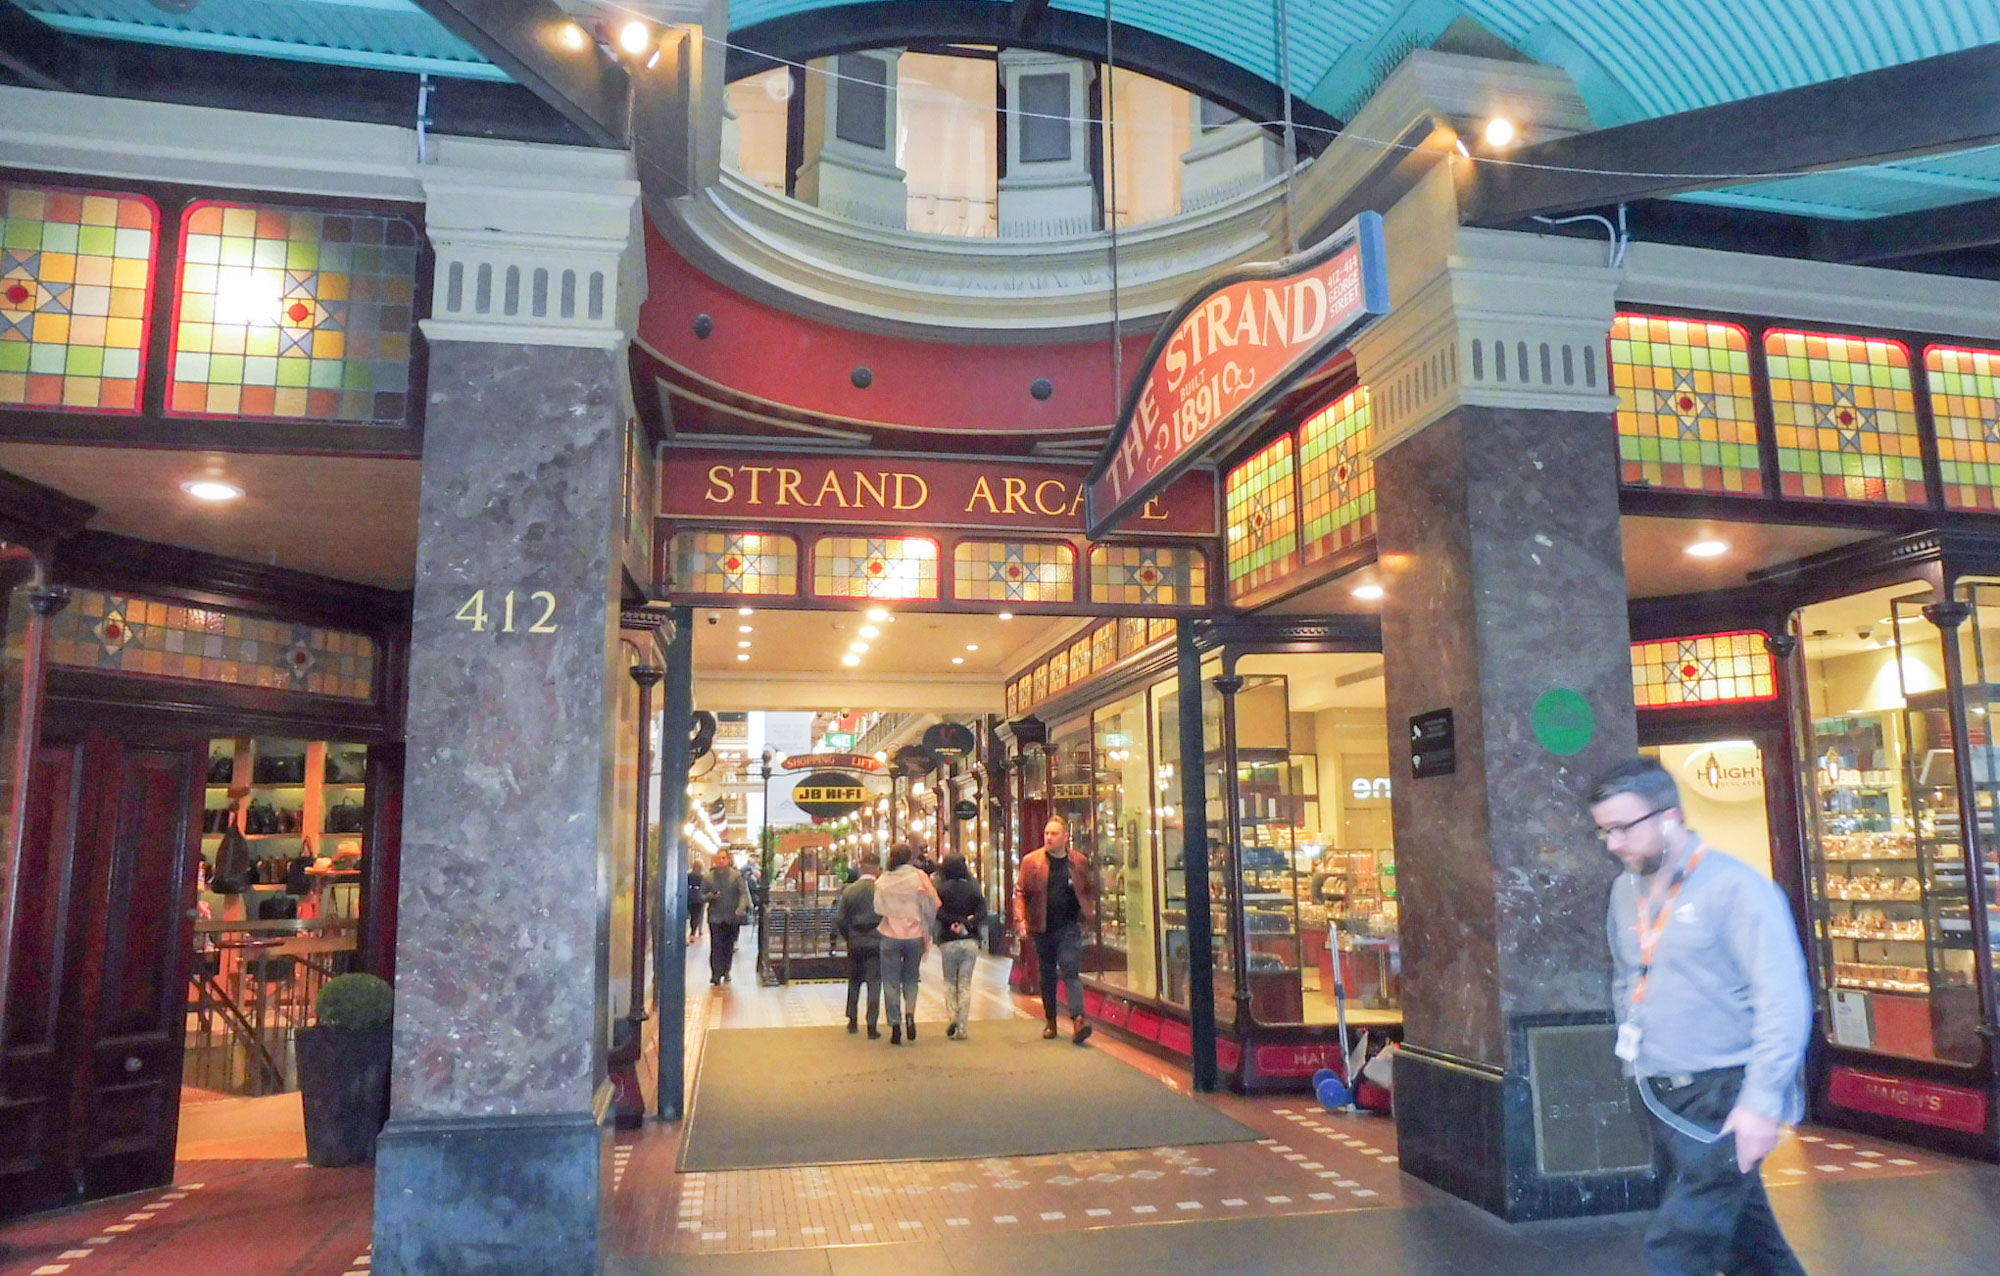 Strand arcade my favorite in Sydney